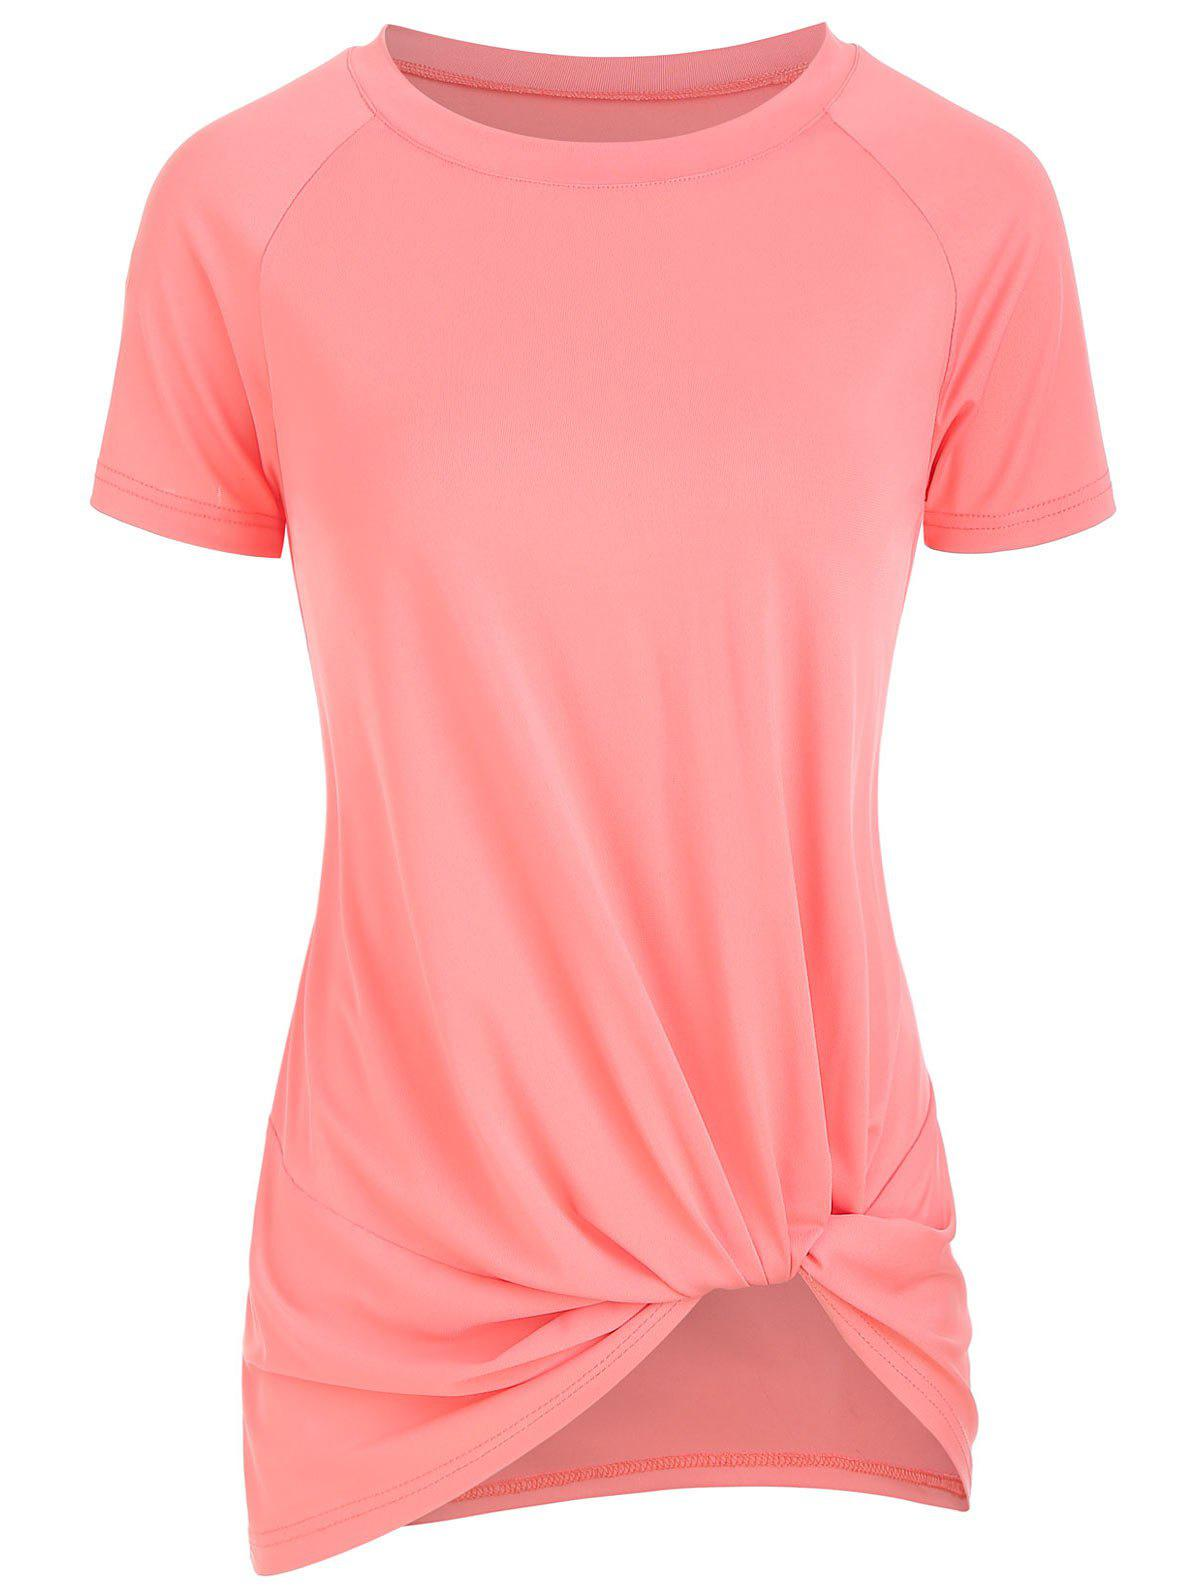 Chic Knotted Short Sleeve Round Neck Tee